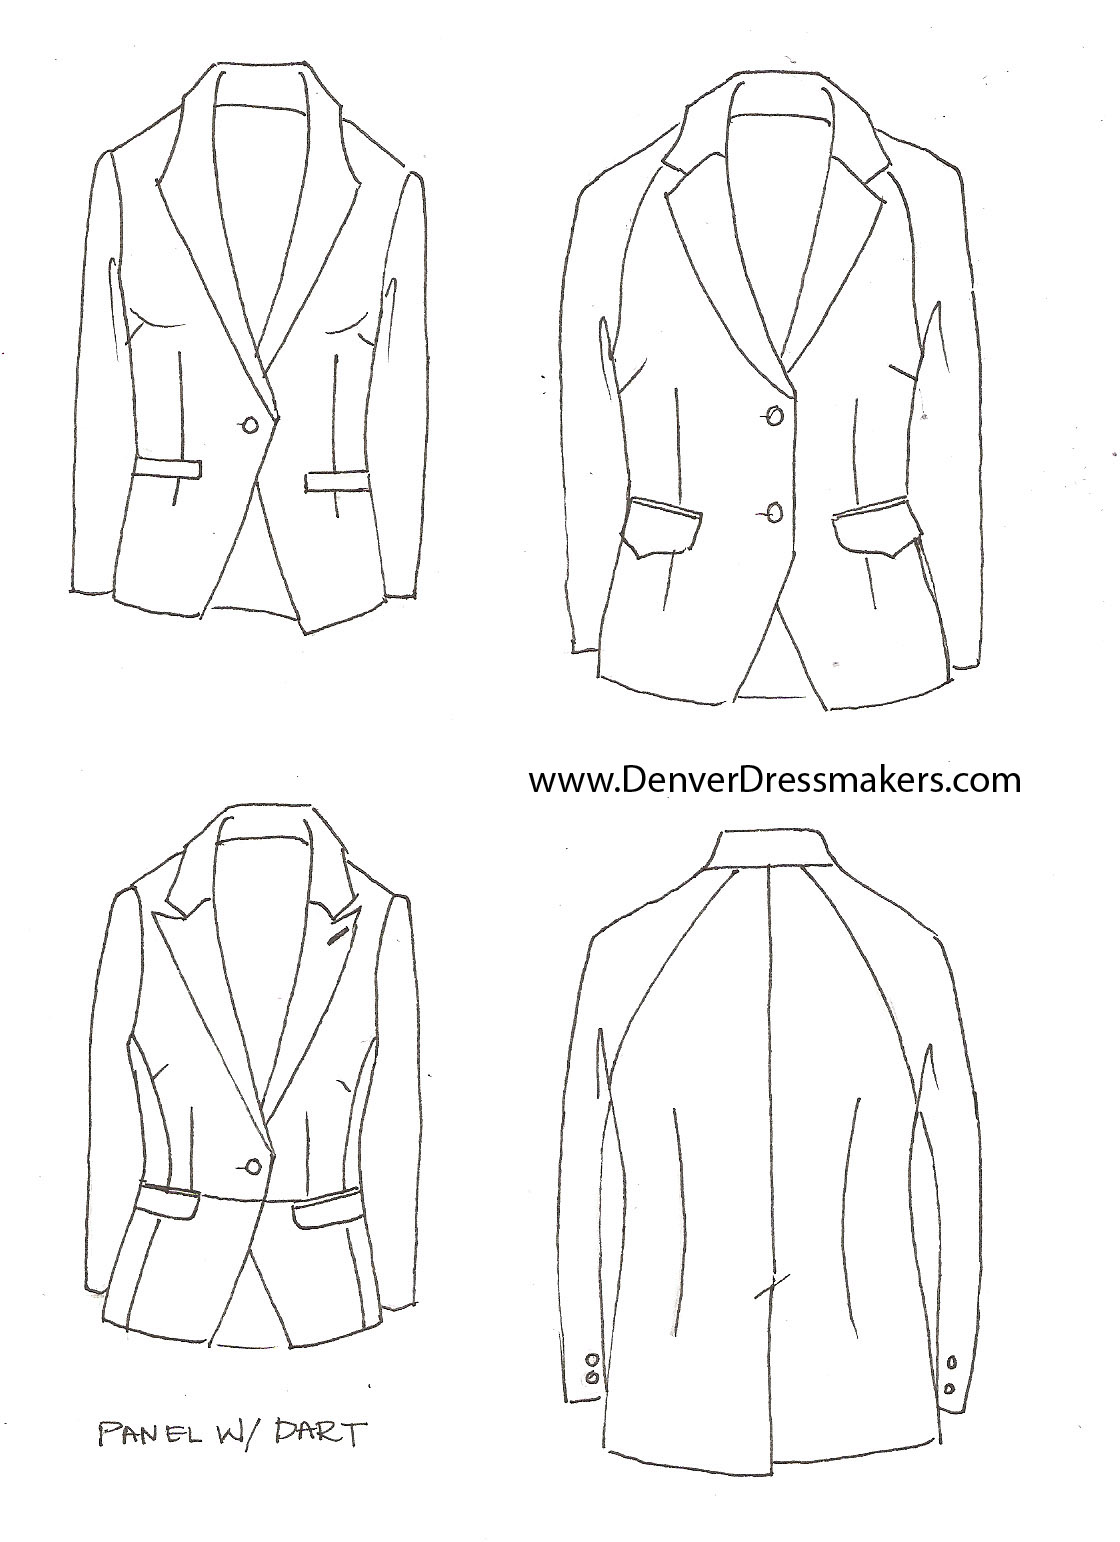 Womens suit denver dressmakers page 2 custom suits and tuxedos for women flashek Image collections